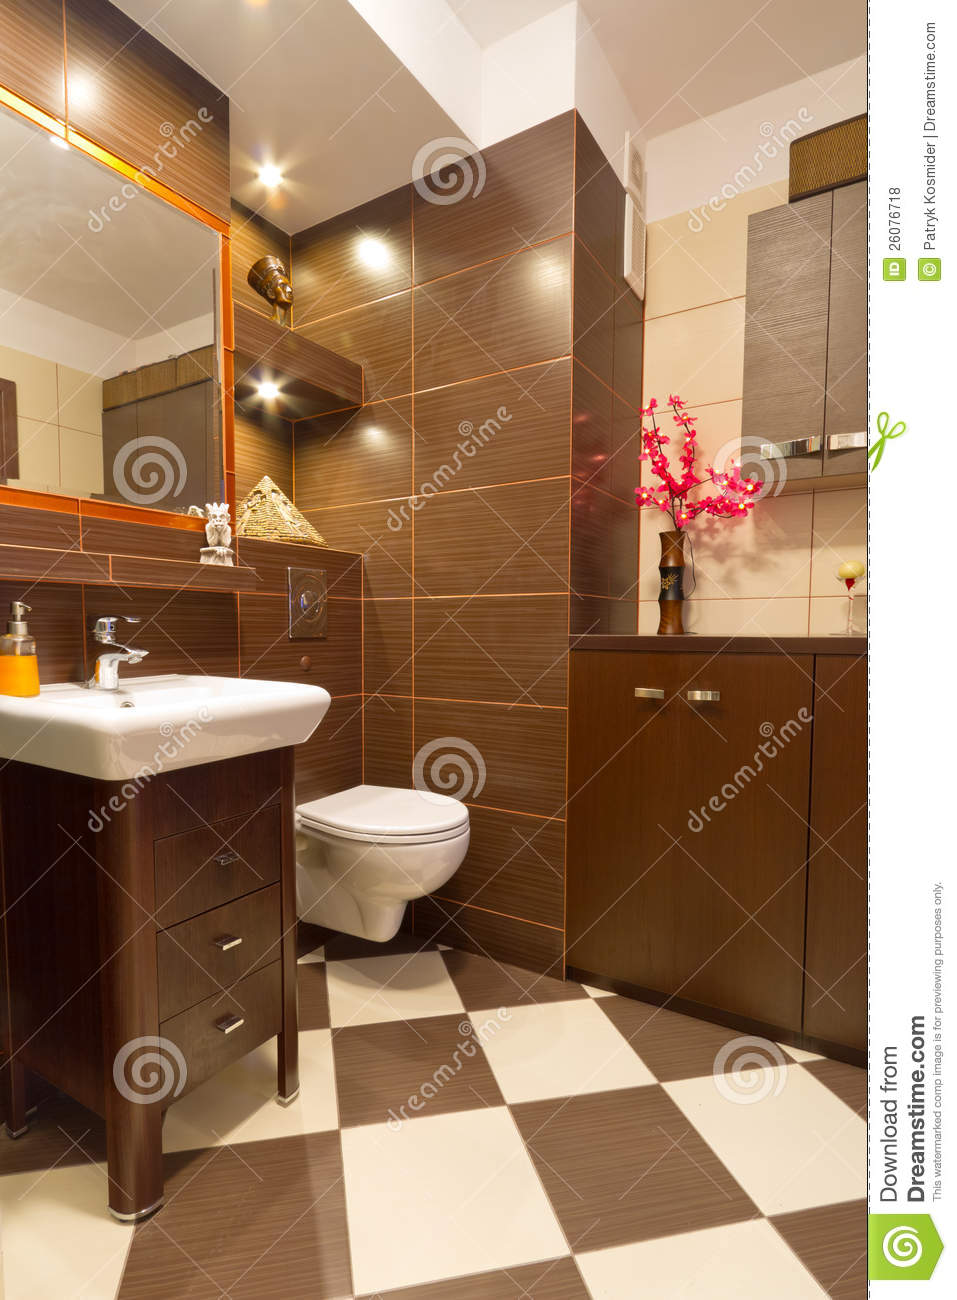 Bathroom Interior With Brown And Beige Tiles Stock Photo  Image 26076718